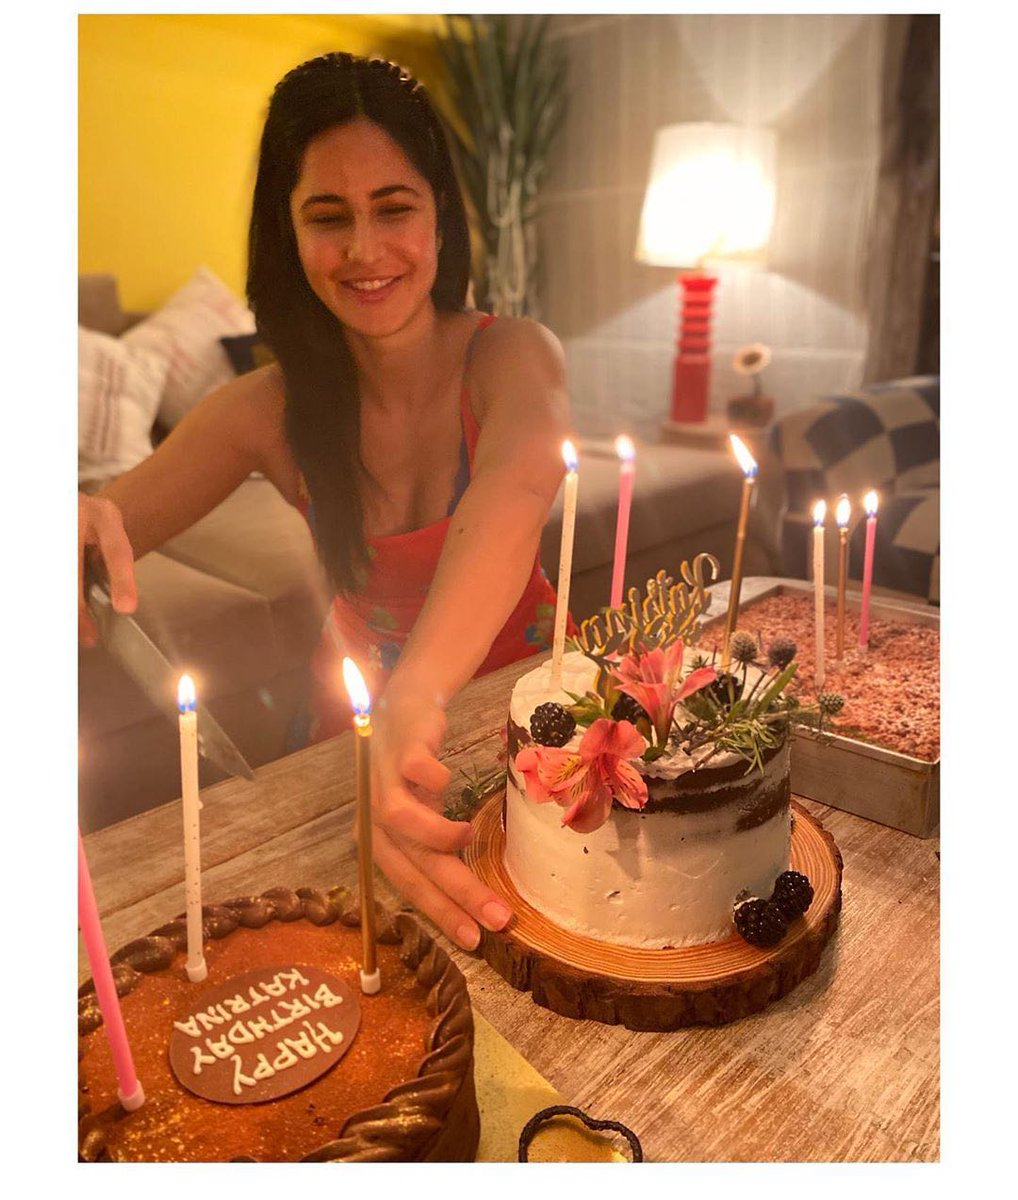 Cause even a quarantine birthday is incomplete without cake. #KatrinaKaif